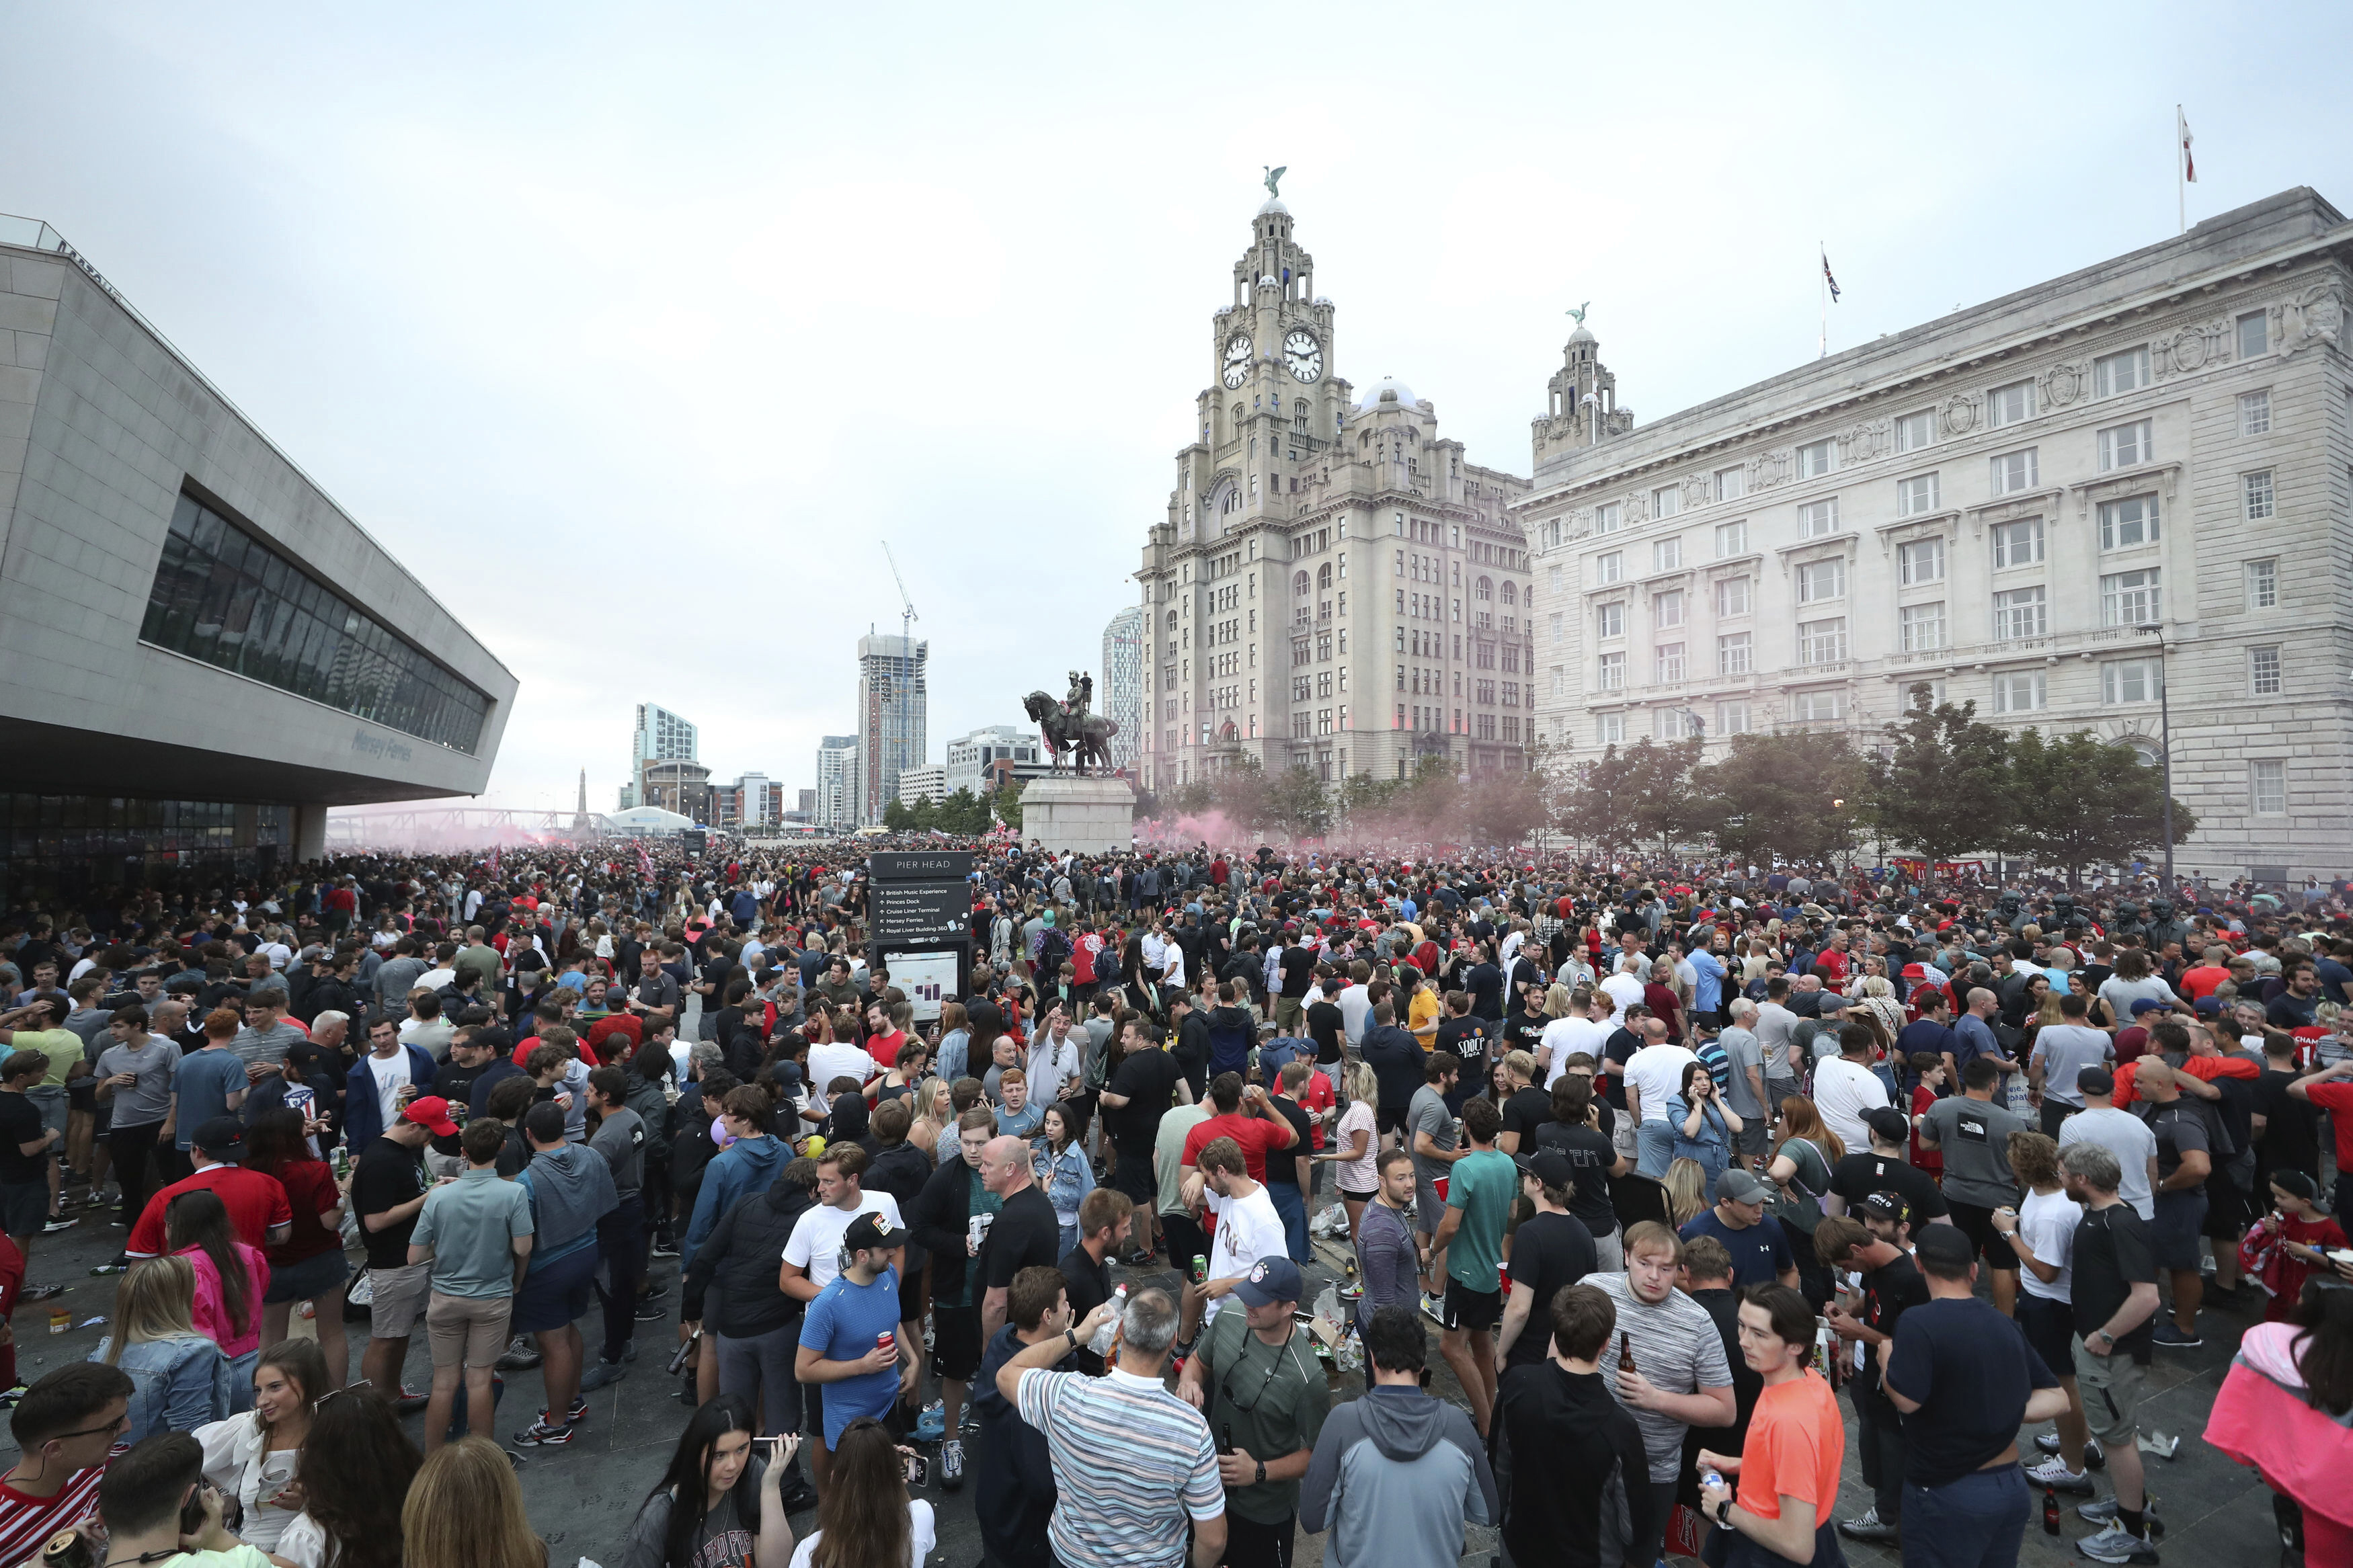 Liverpool soccer fans let off flares outside the Liver Building in Liverpool, England, Friday, June 26, 2020. Fans are being urged to celebrate the club's Premier League triumph at home as police believe more gatherings are planned after thousands filled the streets outside Anfield stadium. (Peter Byrne/PA via AP)